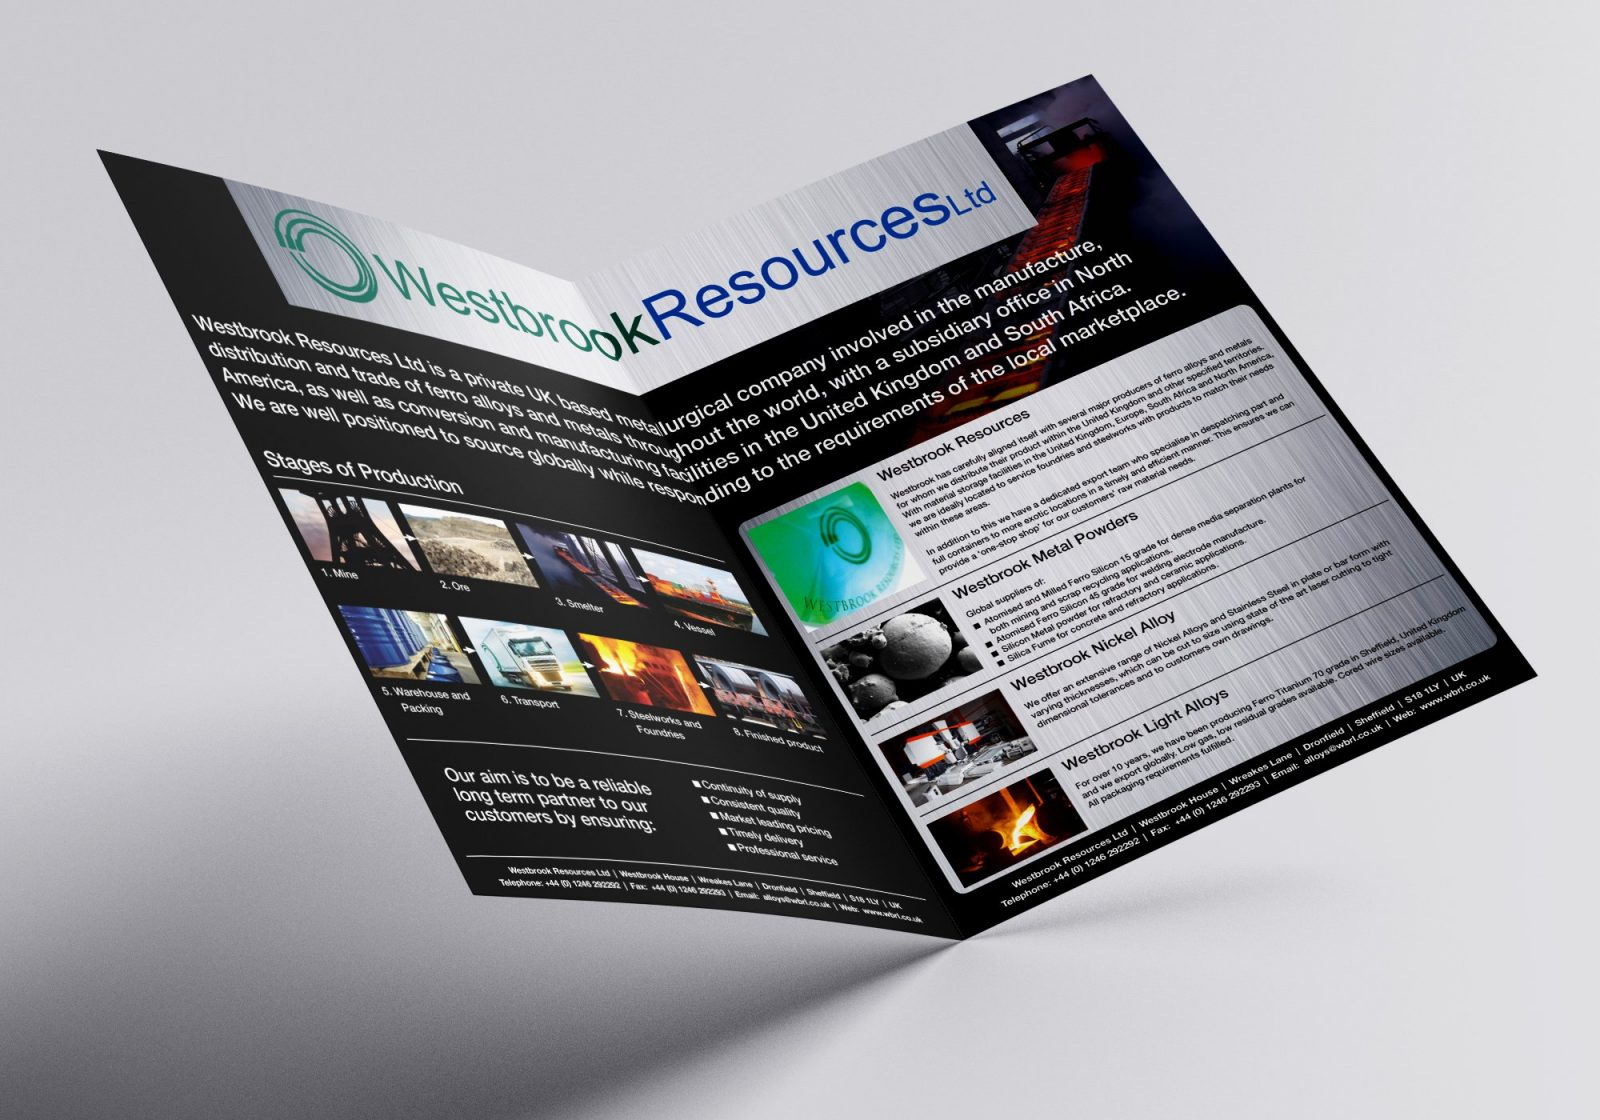 A4 Brochure for Westbrook Resources Ltd showing inside spread